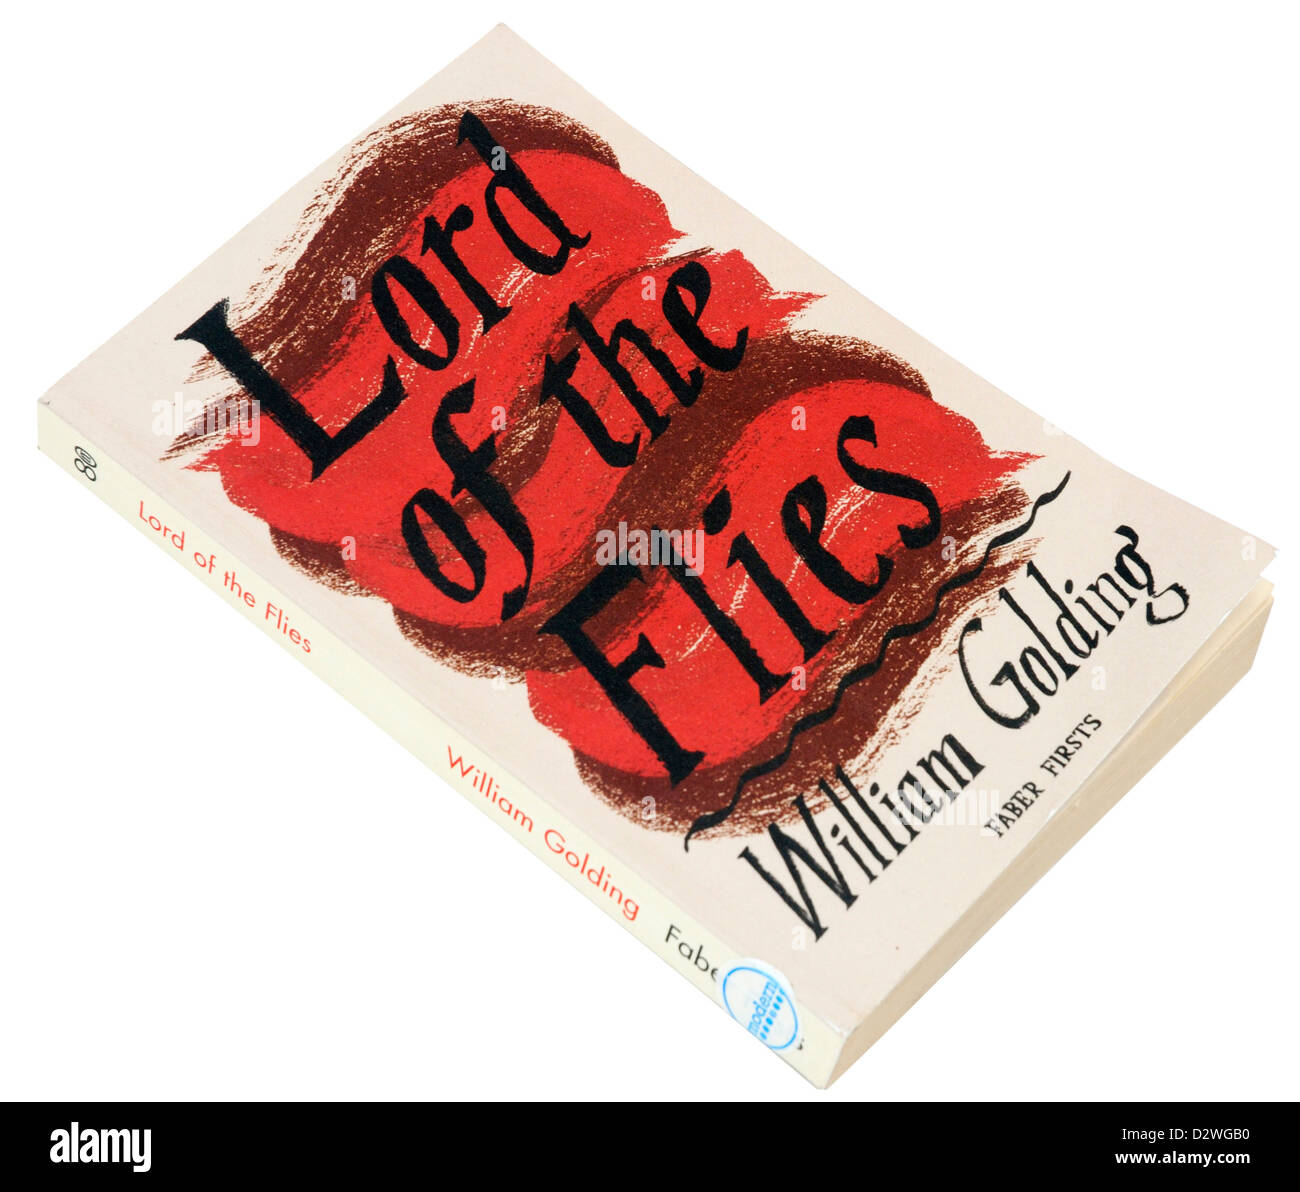 Lord of the Flies by William Golding - Stock Image